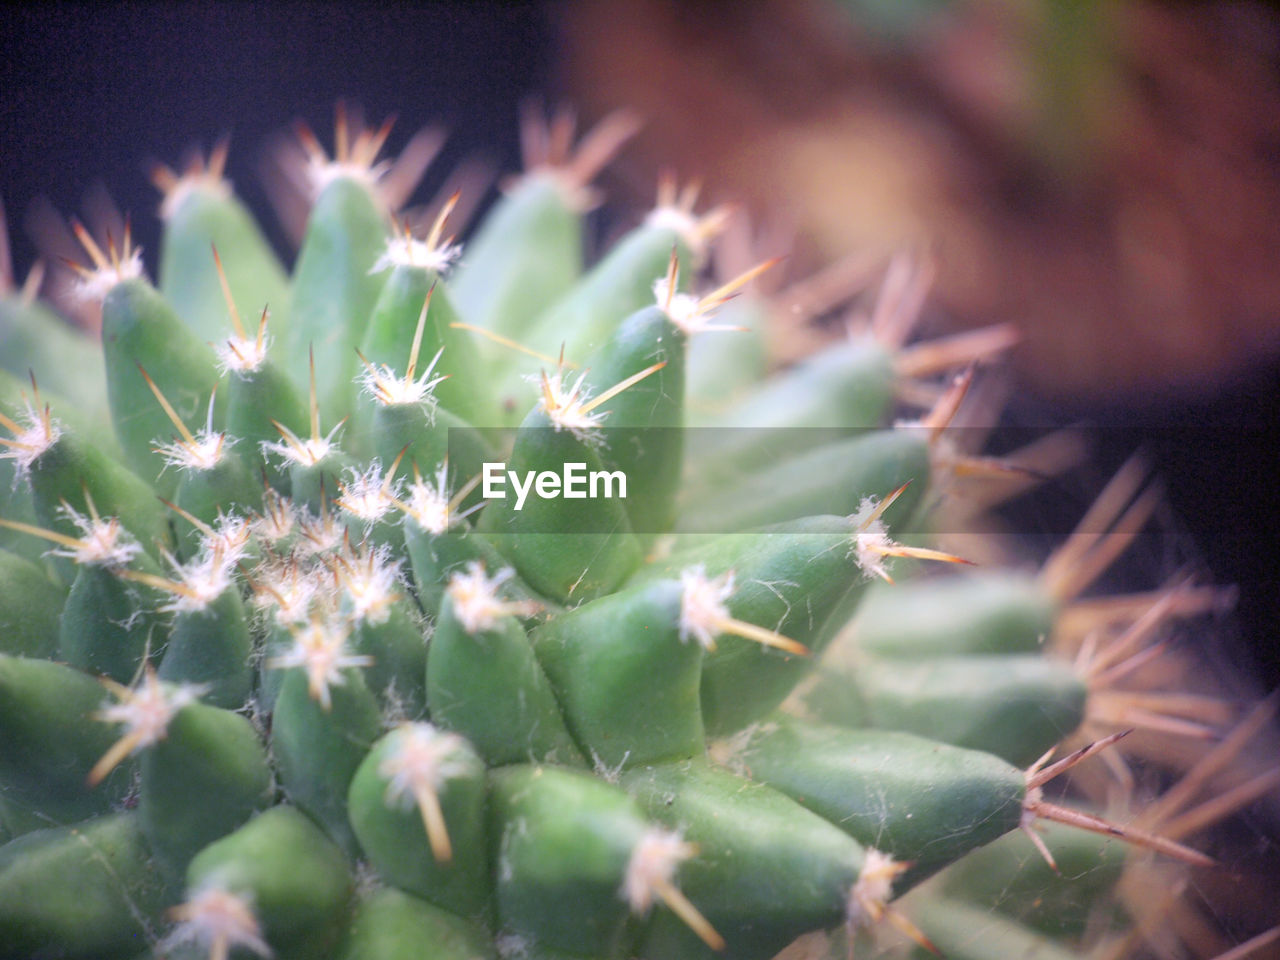 succulent plant, green color, plant, close-up, selective focus, cactus, growth, beauty in nature, thorn, no people, nature, spiked, sharp, day, outdoors, freshness, focus on foreground, flower, plant part, leaf, spiky, coniferous tree